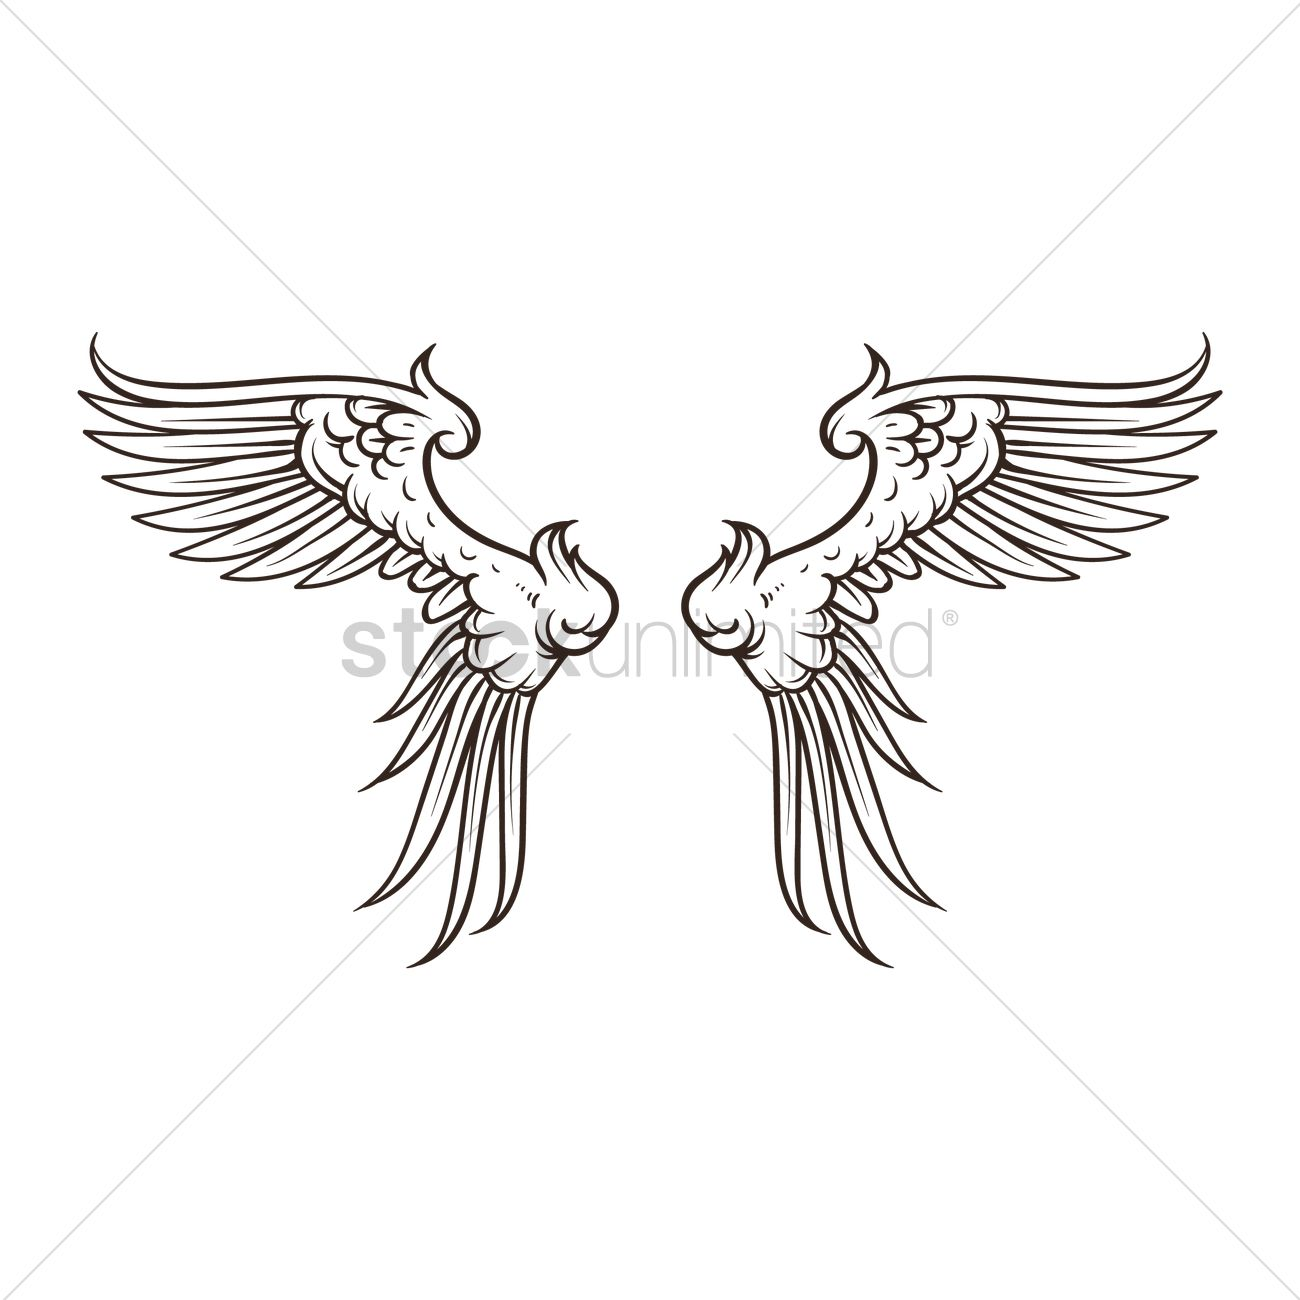 38edeafc Wings design Vector Image - 1873131 | StockUnlimited